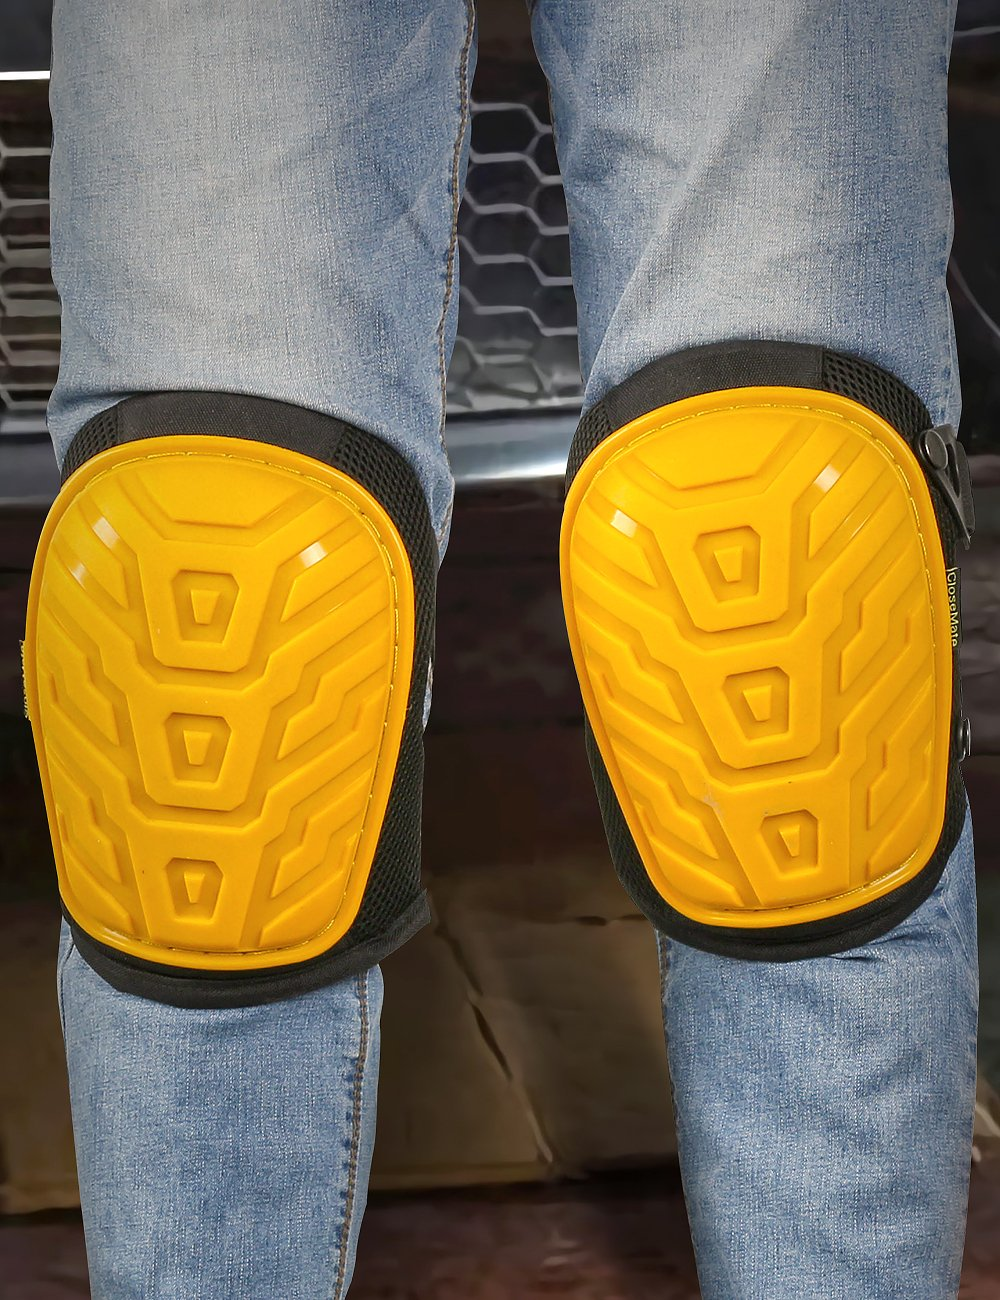 Anti-Slip Knee Pads for Work by Closemate, with Cozy Gel and EVA Foam Cushion, Designed for Gardening, Cleaning, Construction, Flooring and Carpeting, Professional Knee Protector by Closemate (Image #5)